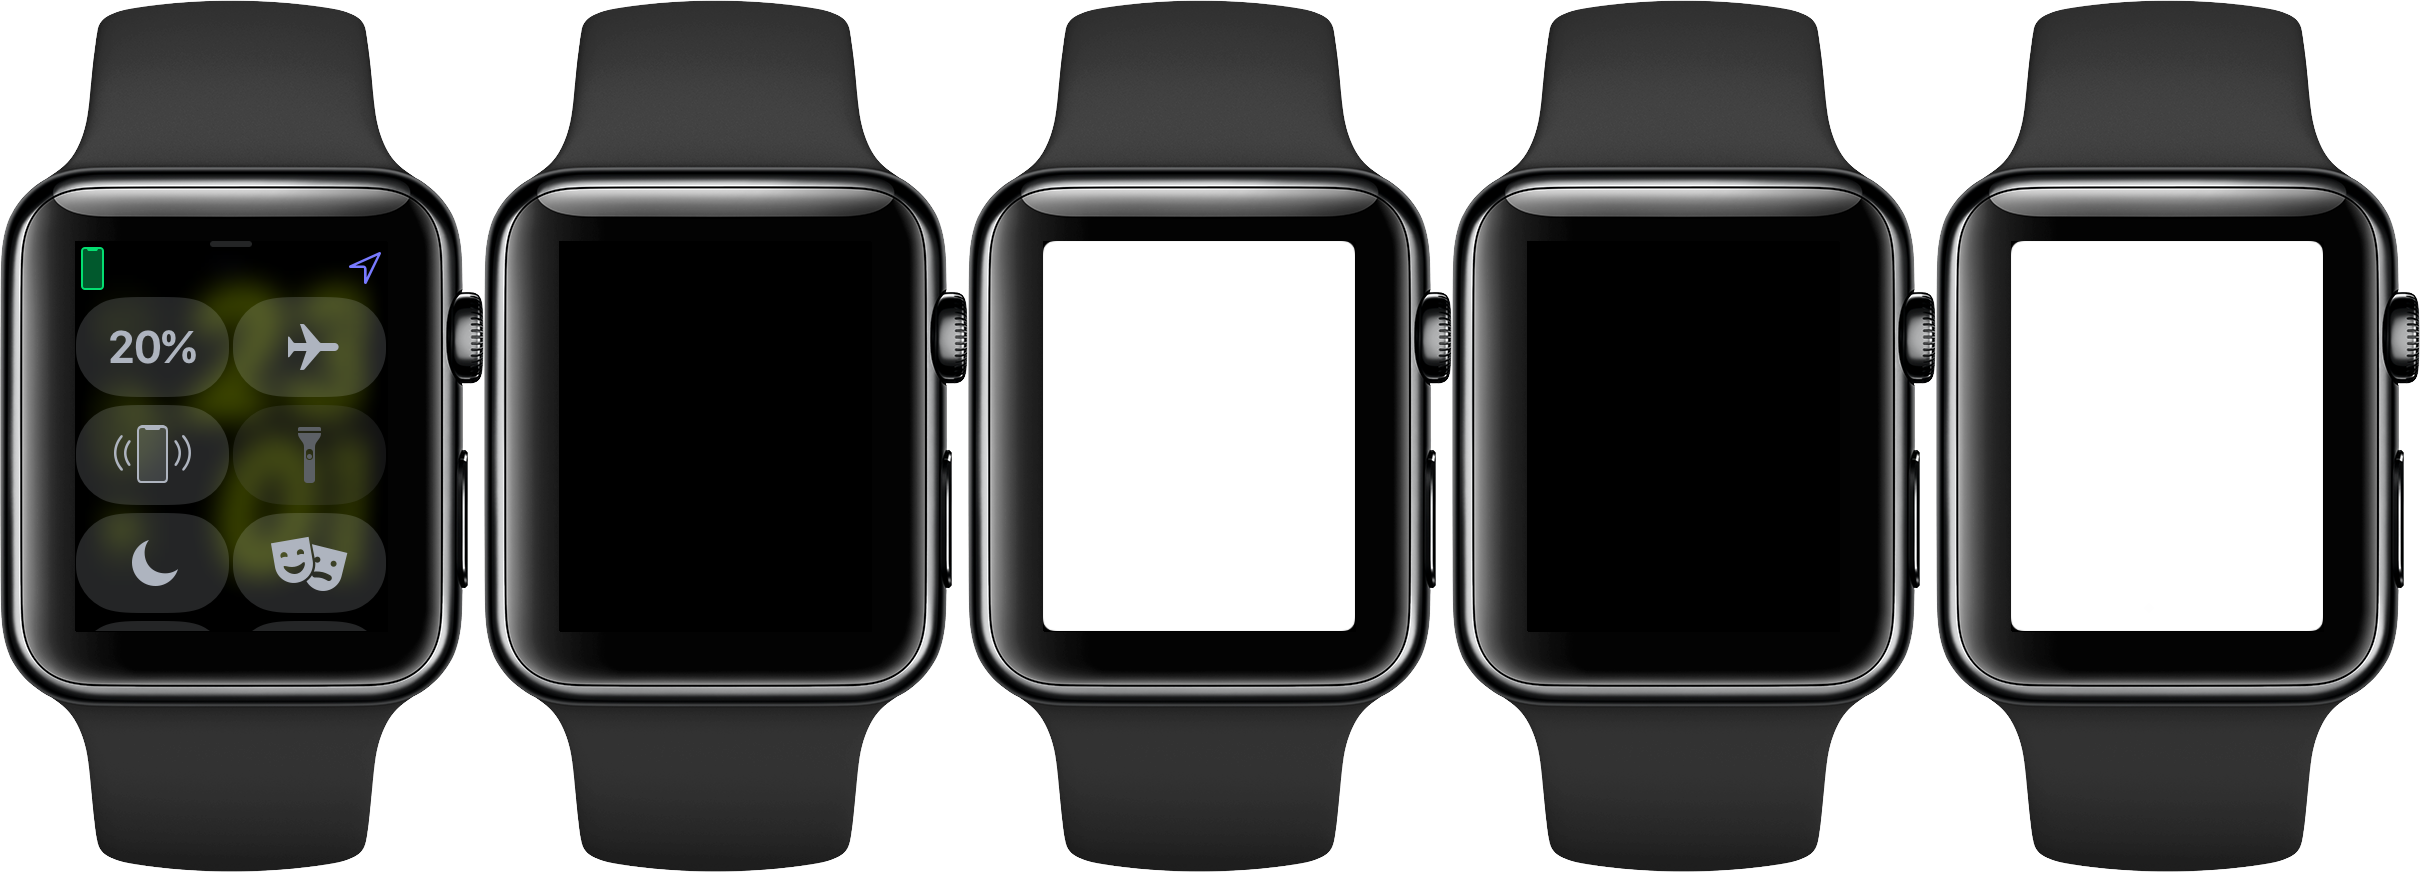 Cambio entre los modos de linterna de Apple Watch